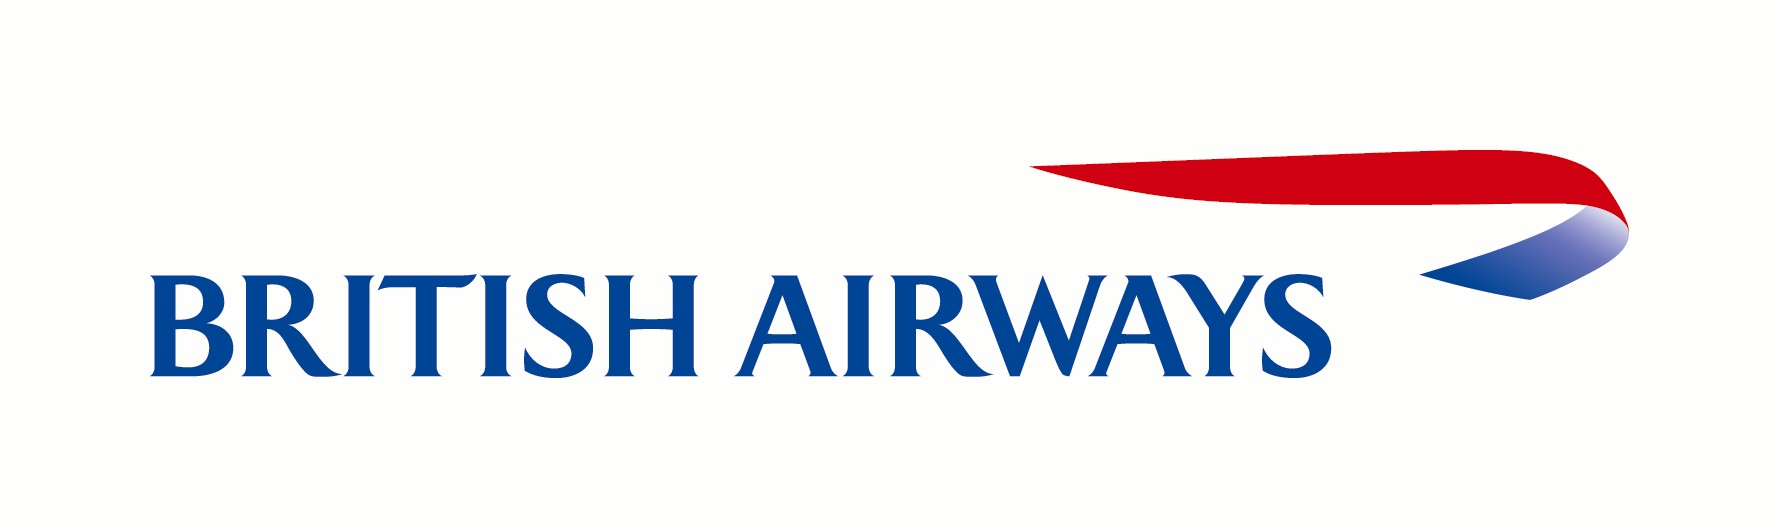 Provider: Offer: Validity Date: British Airways: Earn Double Avios on every British Airways flight Worldwide as well as British Airways flights operated by American Airlines, Iberia and Finnair when travelling between Europe and North America.